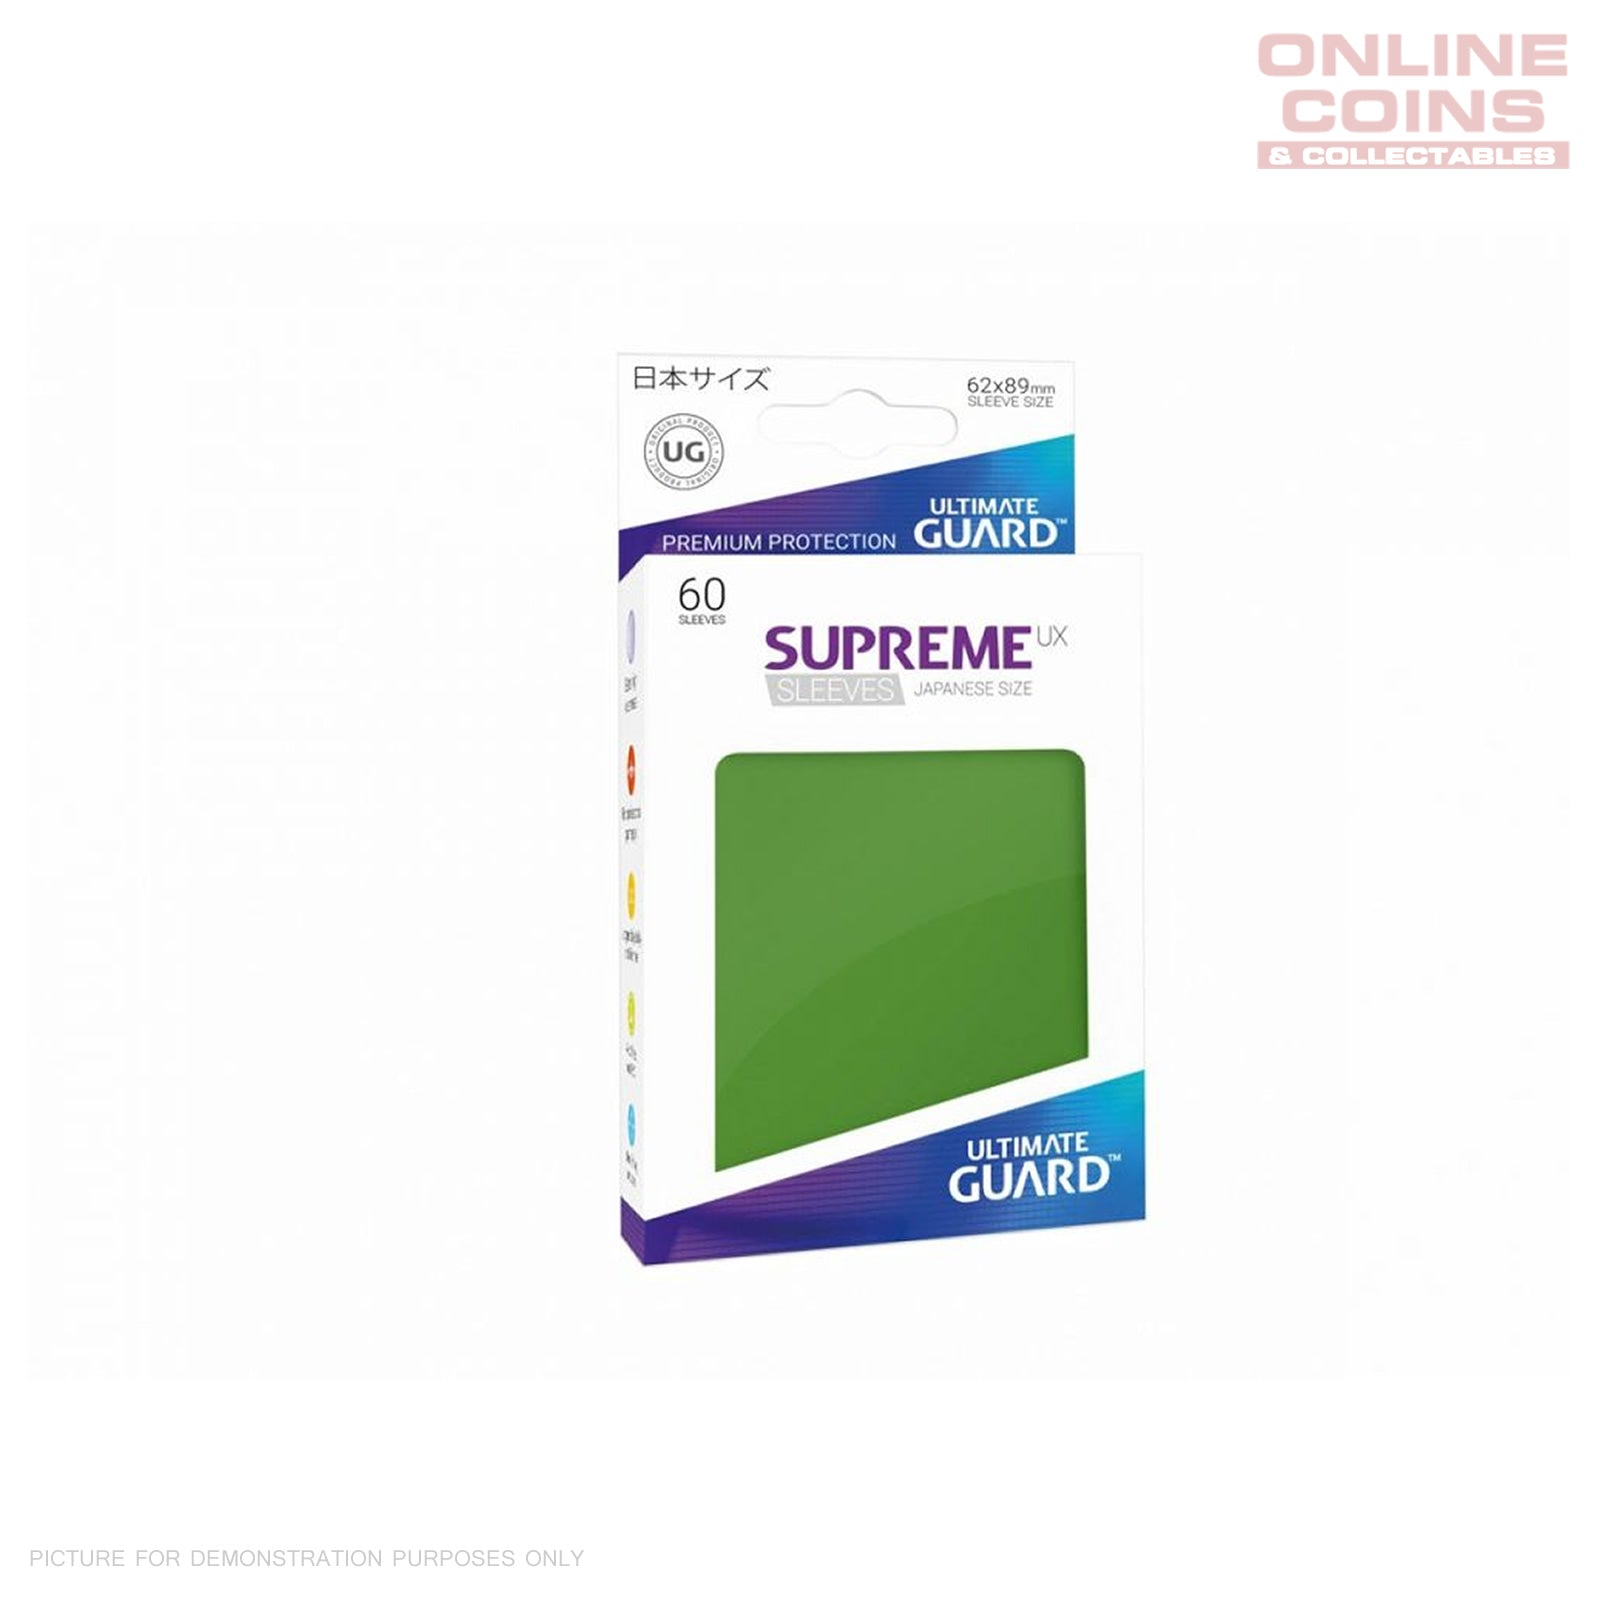 Ultimate Guard Supreme UX sleeves Japanese size 60